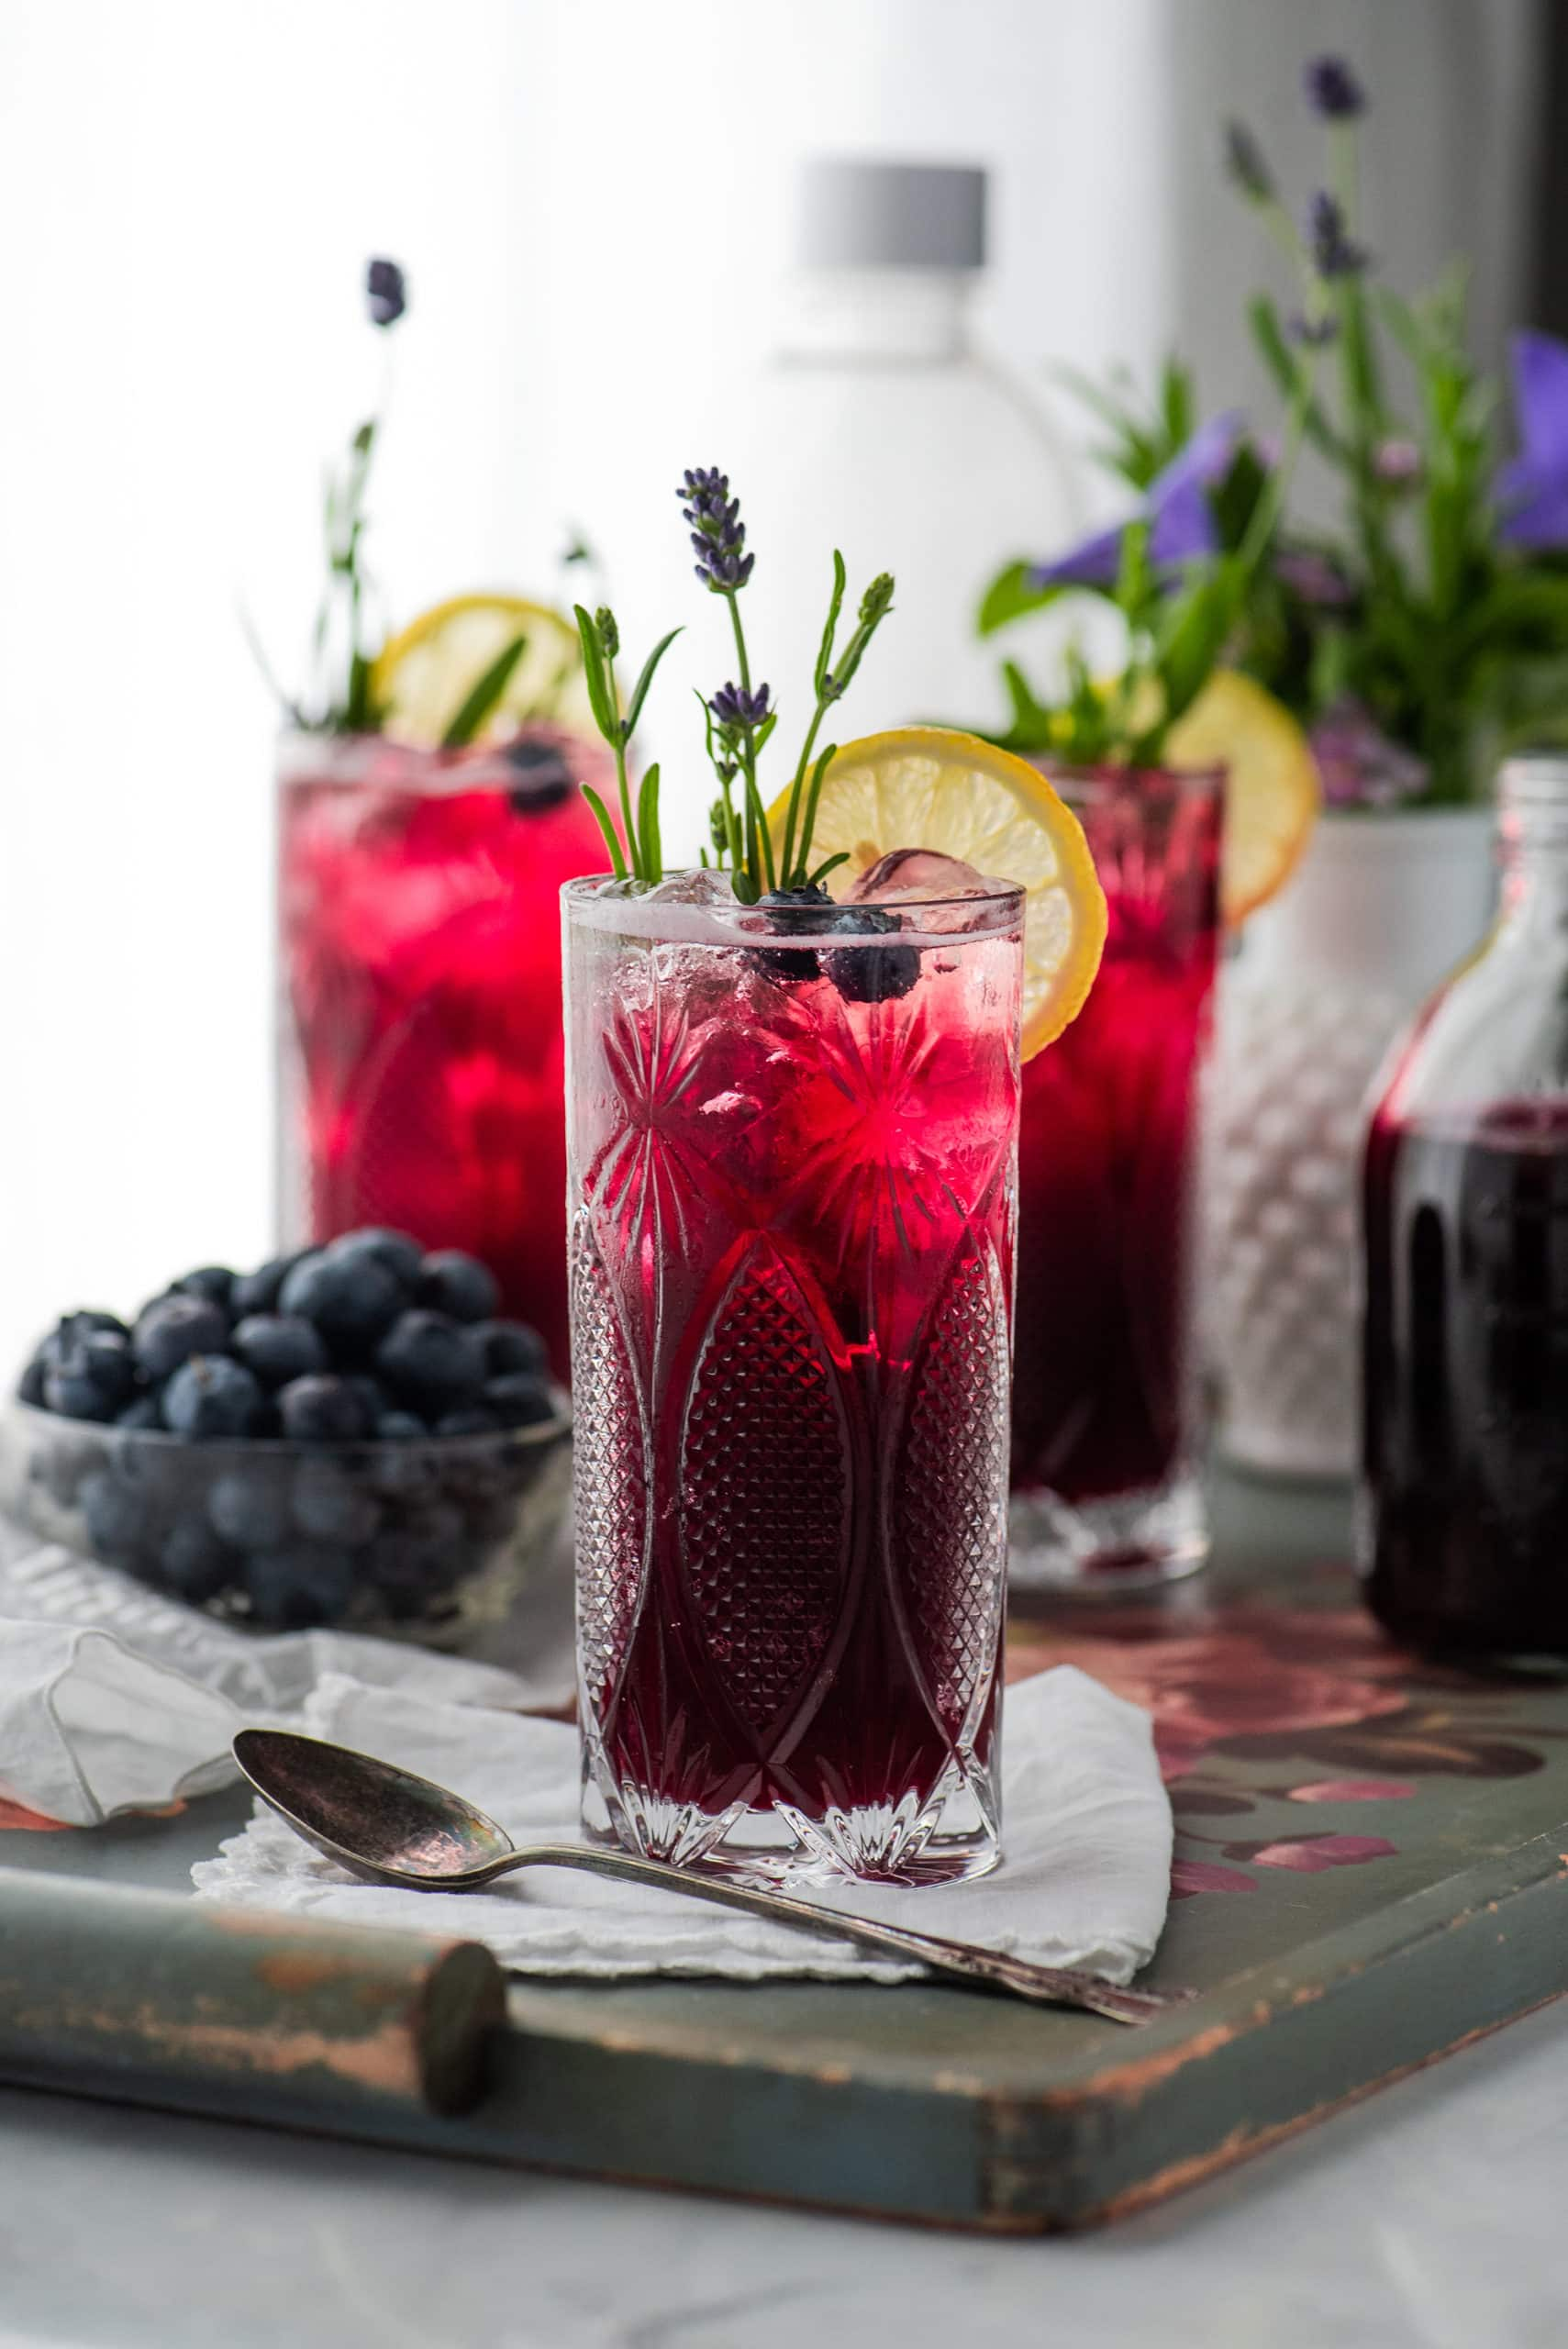 Blueberry Lavender Soda 6905 scaled - The Best Homemade Berry Iced Tea